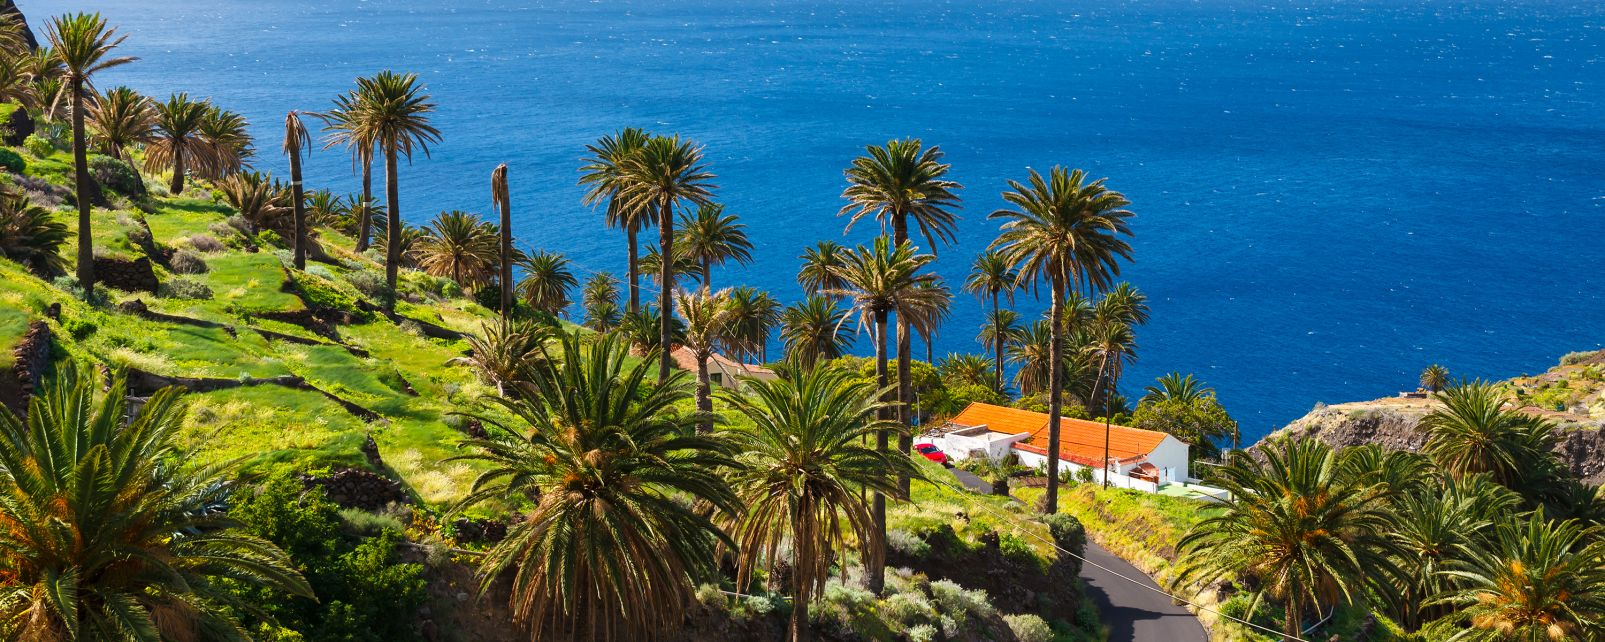 The Canary Islands, Spain, Spain, The Canary Islands